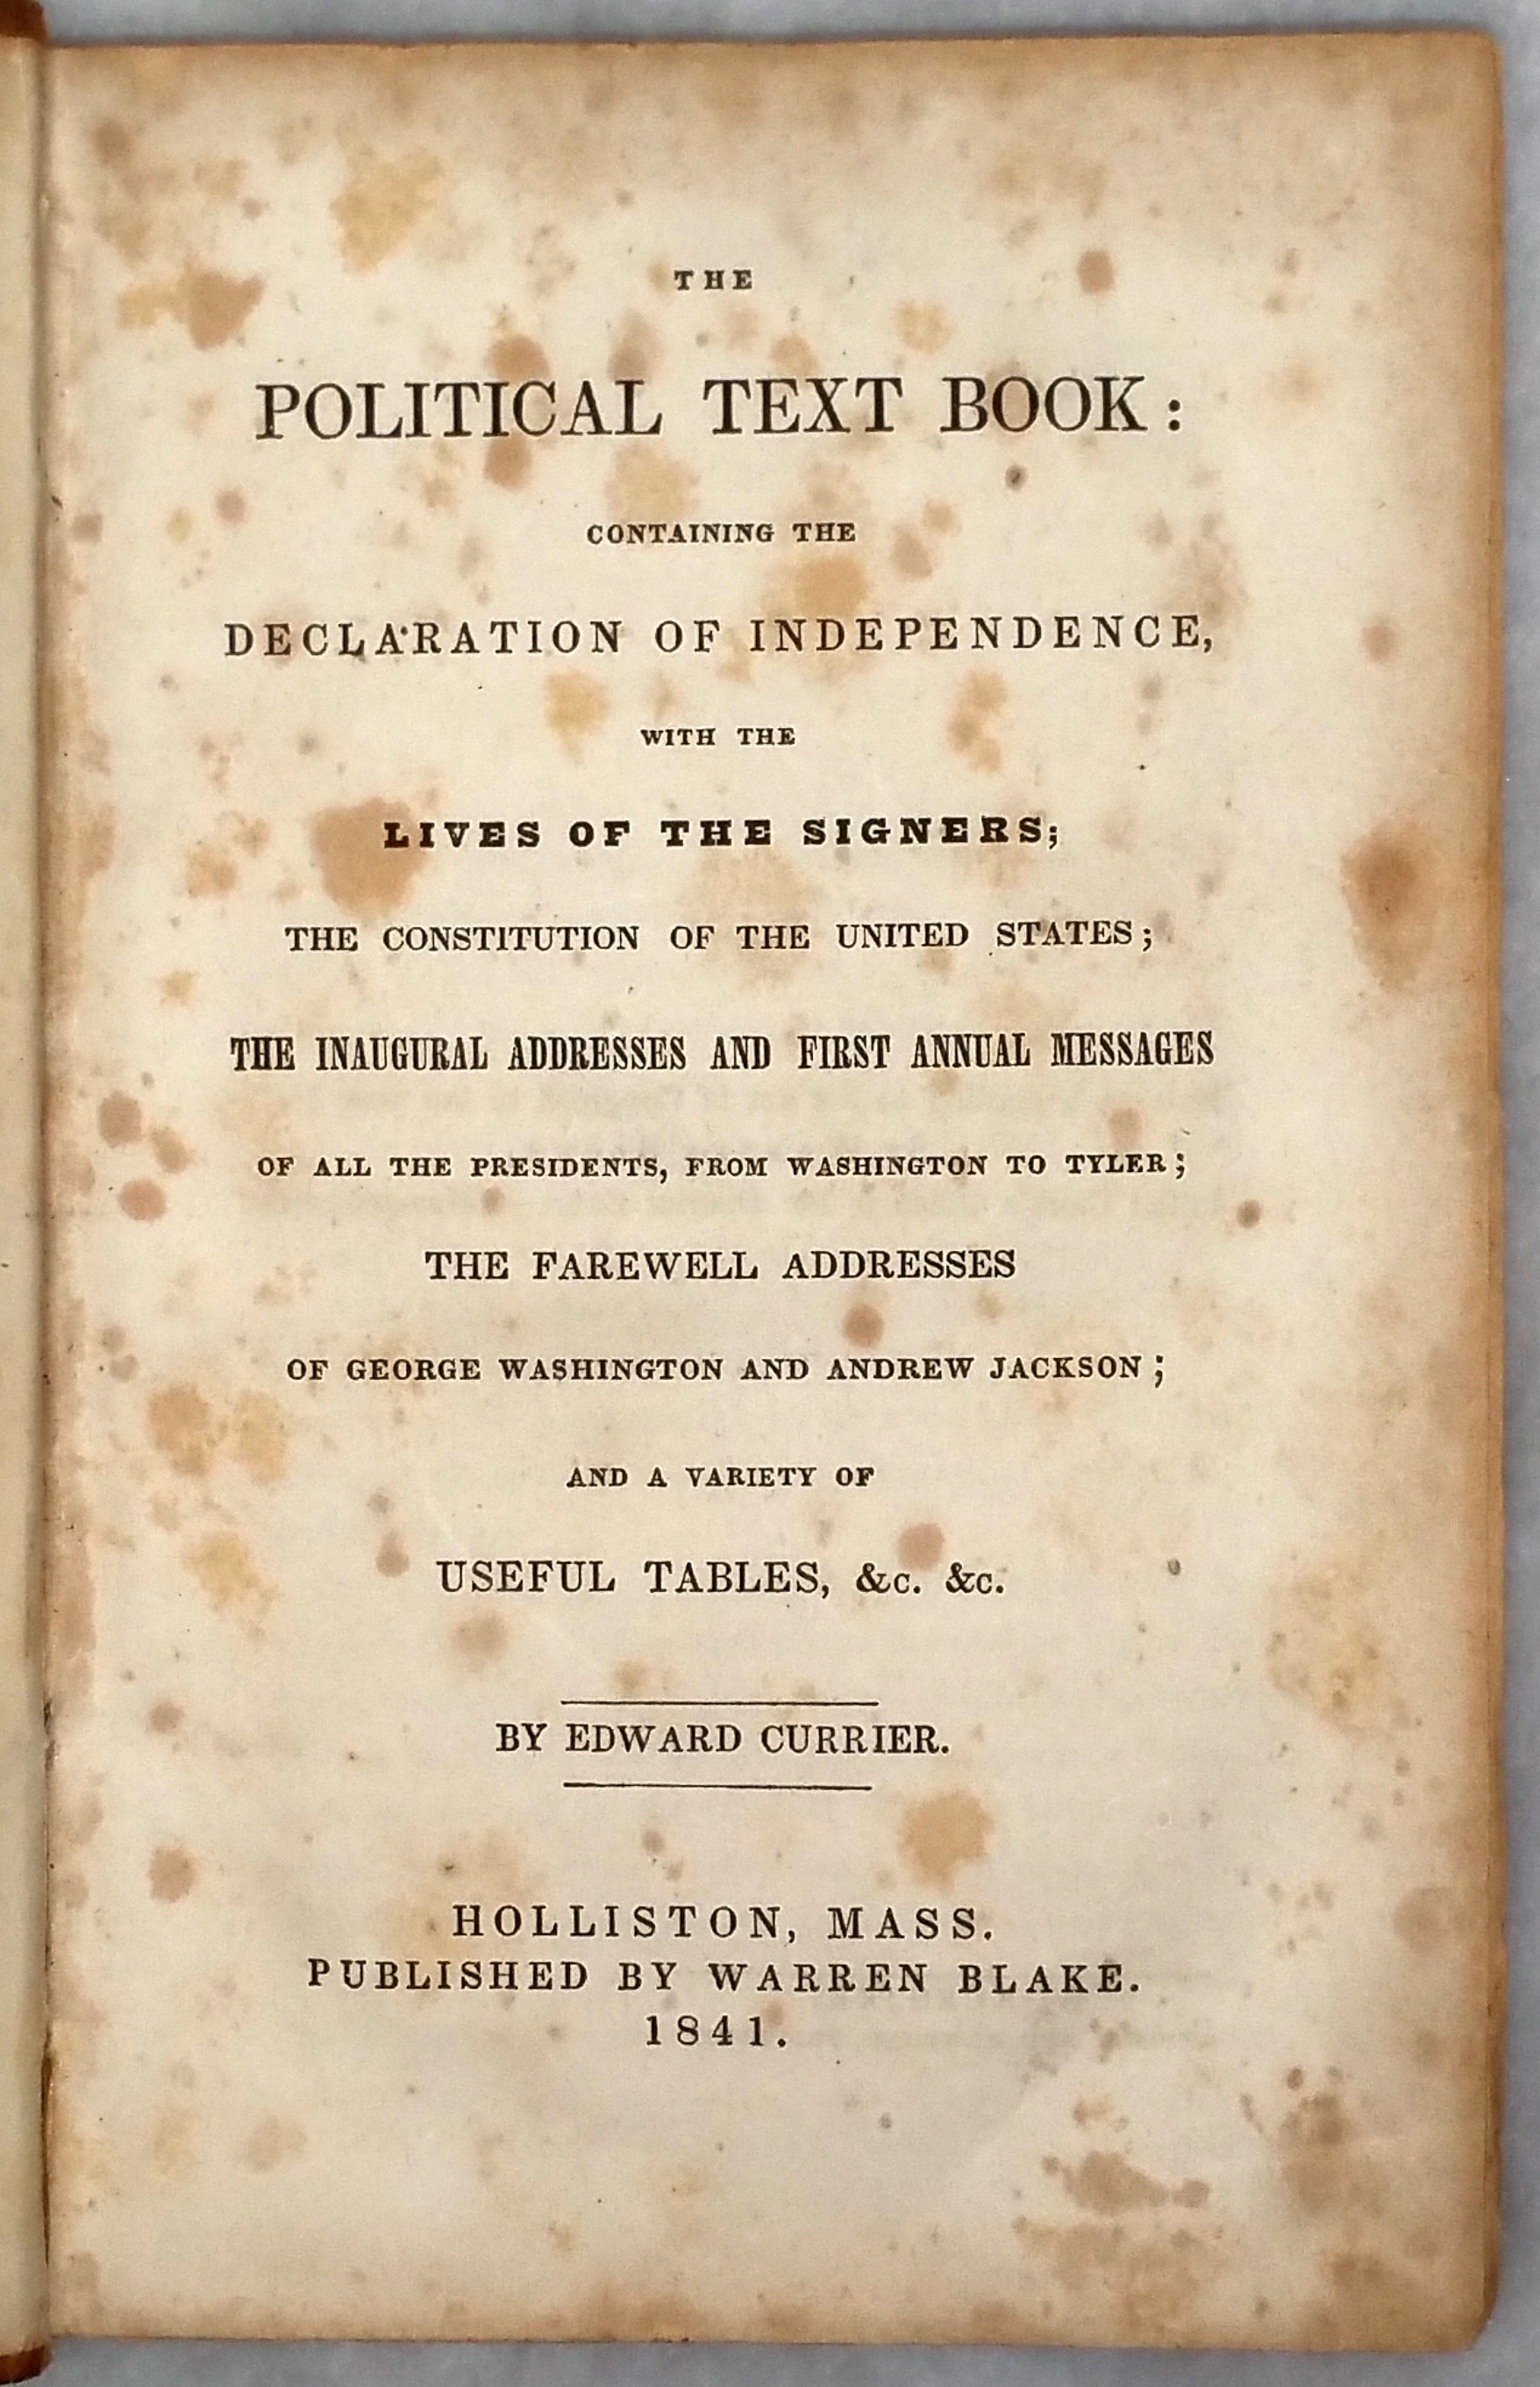 Image for The Political Text Book:  Containing the Declaration of Independence, with the Lives of the Signers; The Constitution of the United States; The Inaugural Addresses and First Annual Messages of All the Presidents, from Washington to Tyler...